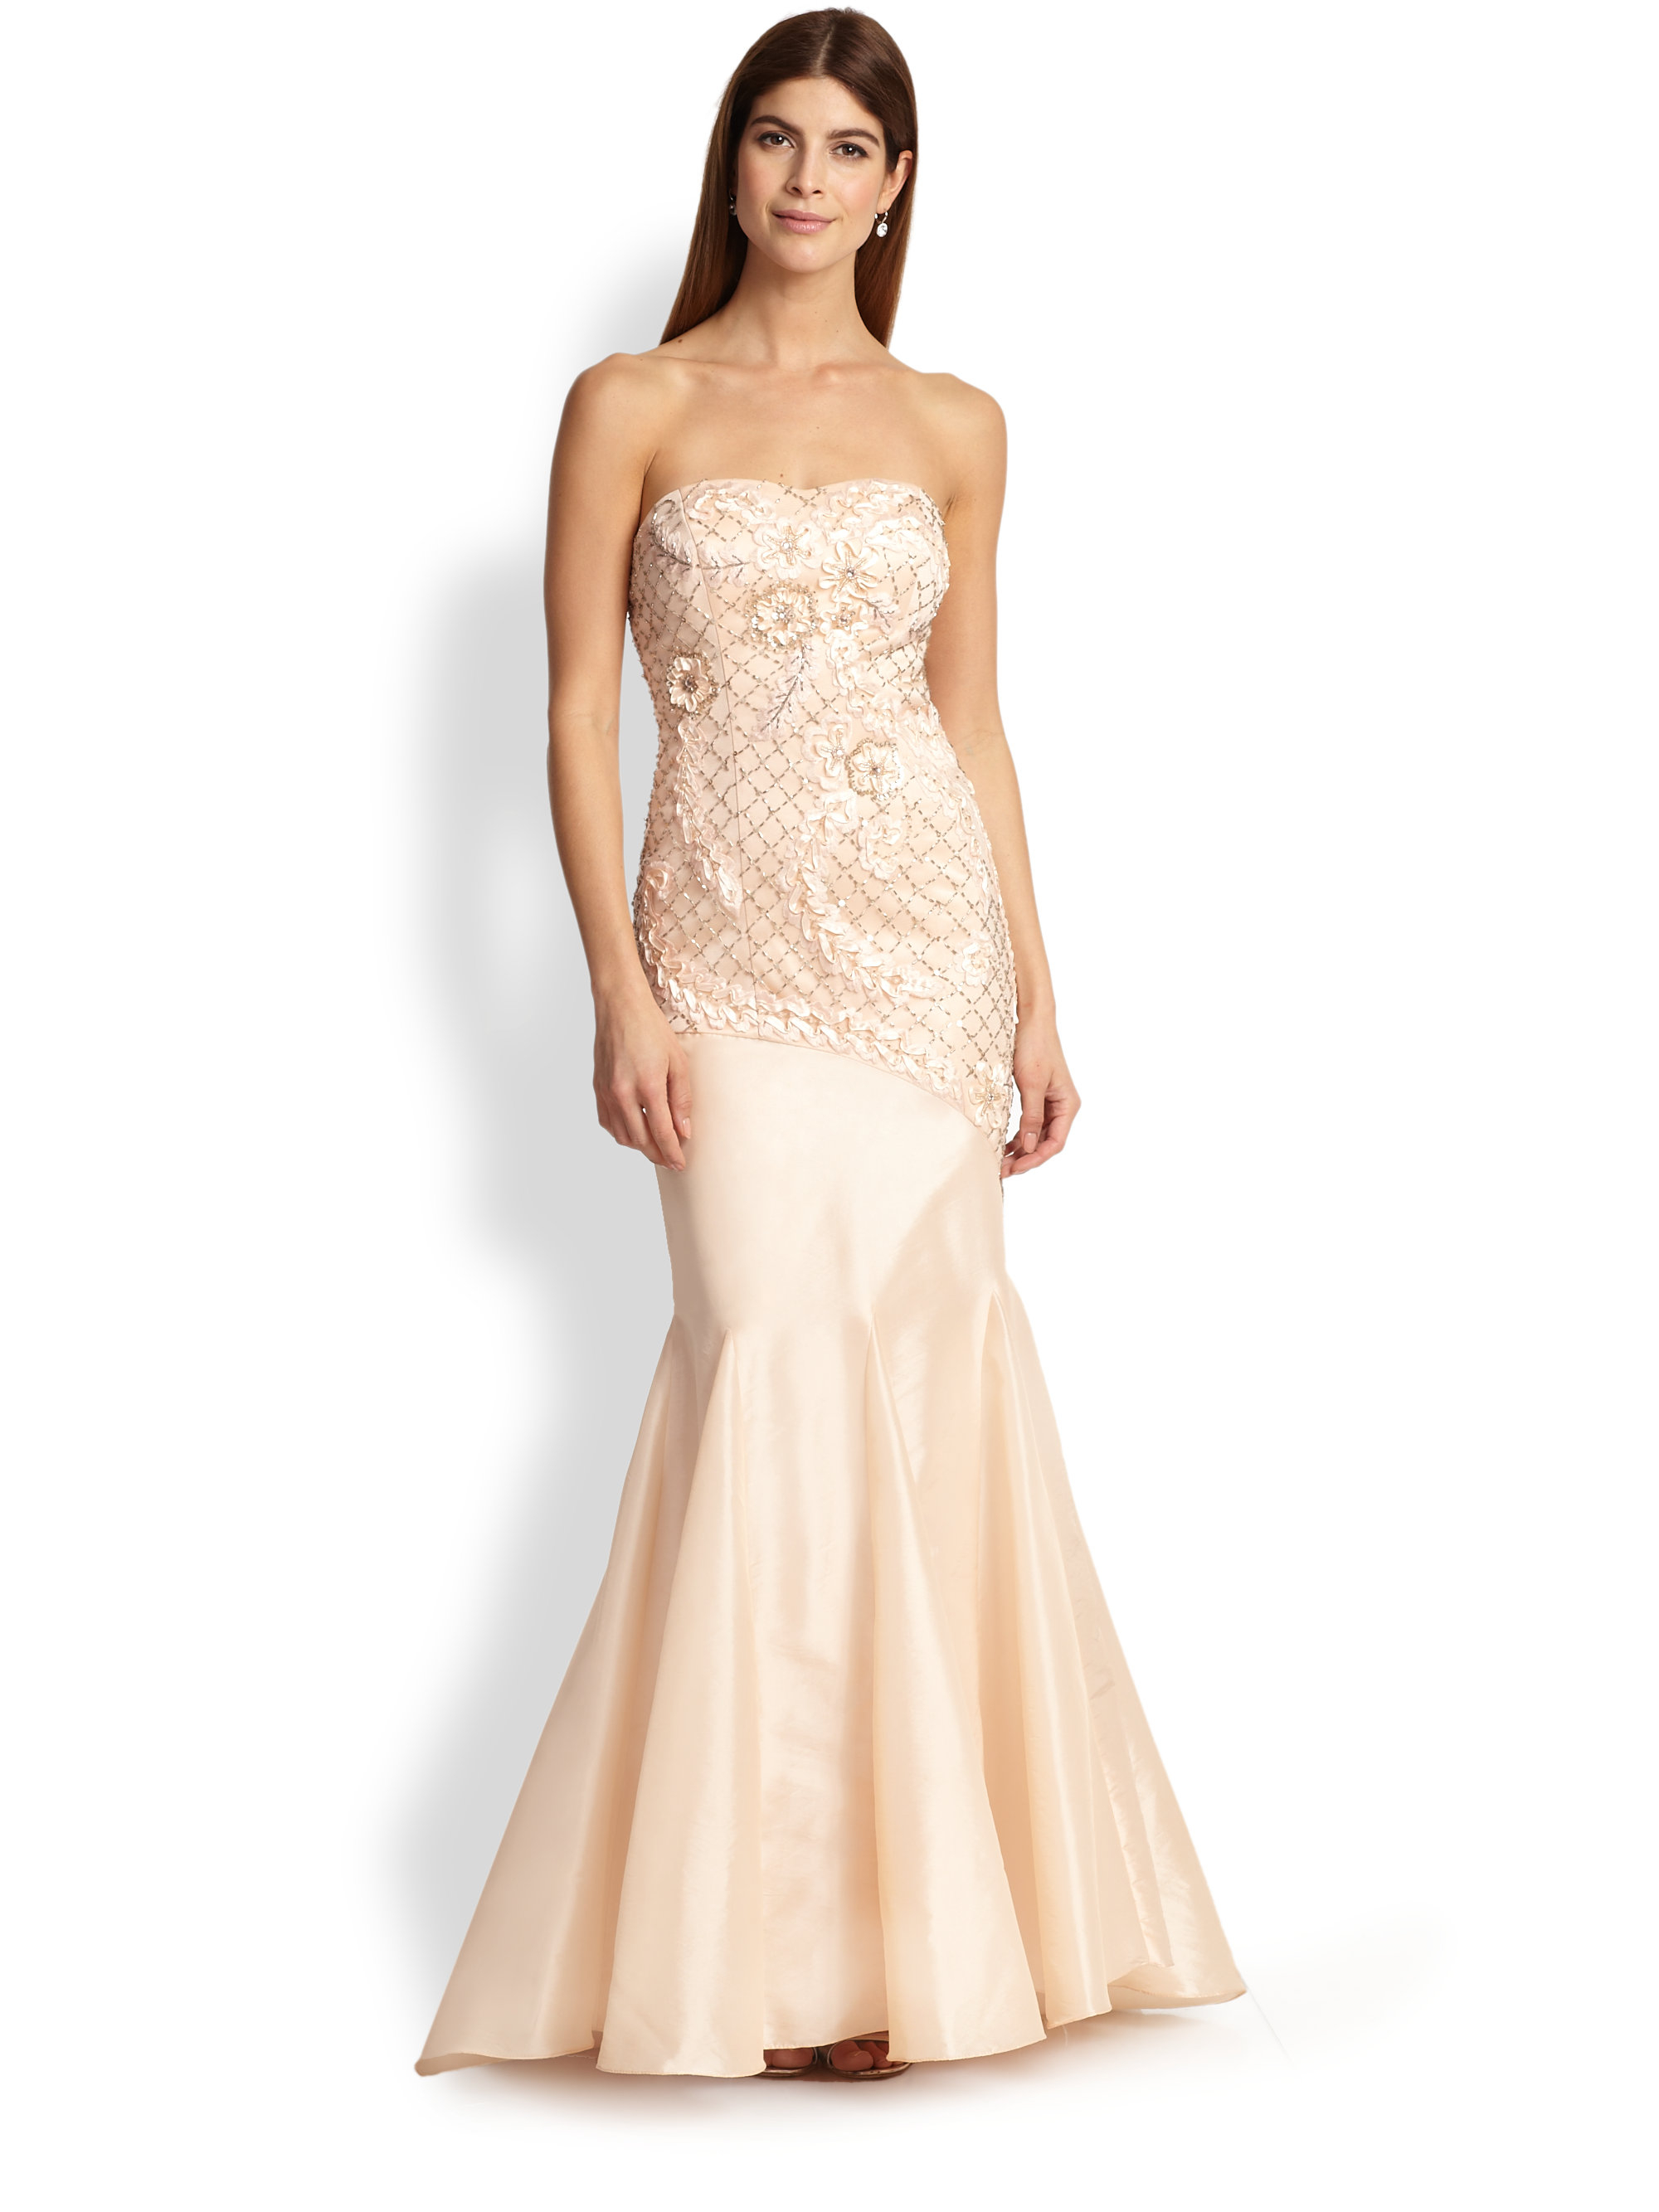 Lyst - Sue Wong Strapless Flower Applique Trumpet Gown in Natural